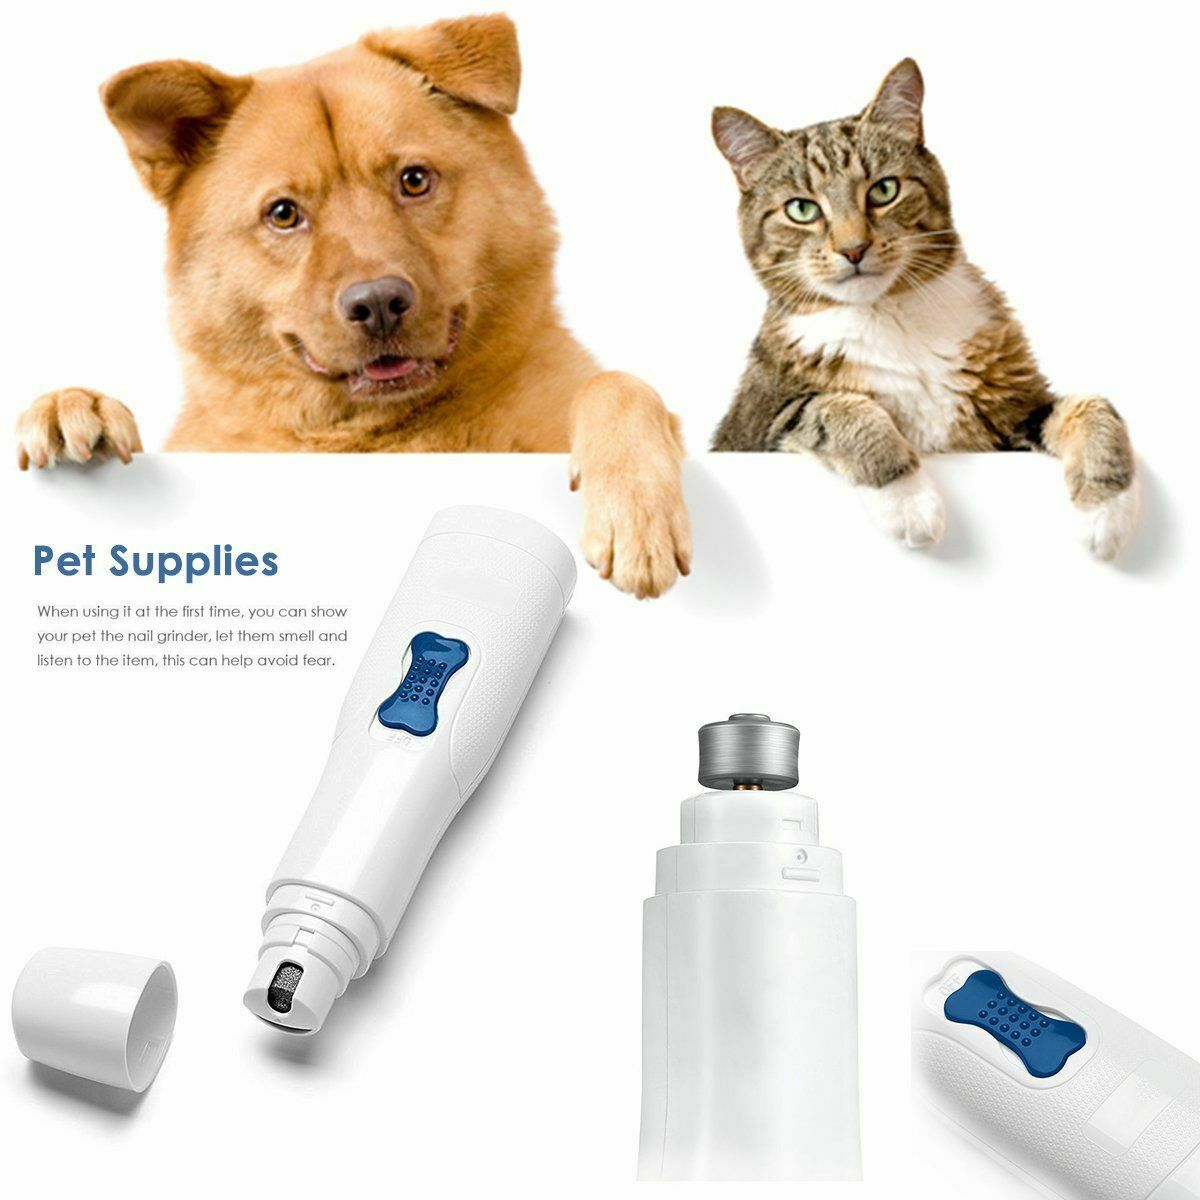 Electric Pet Nail Grinder Claw Grooming Trimmer Dog Cat Paws Clipper Tools Kits nail grinder pet supplies pet nail trimmer image